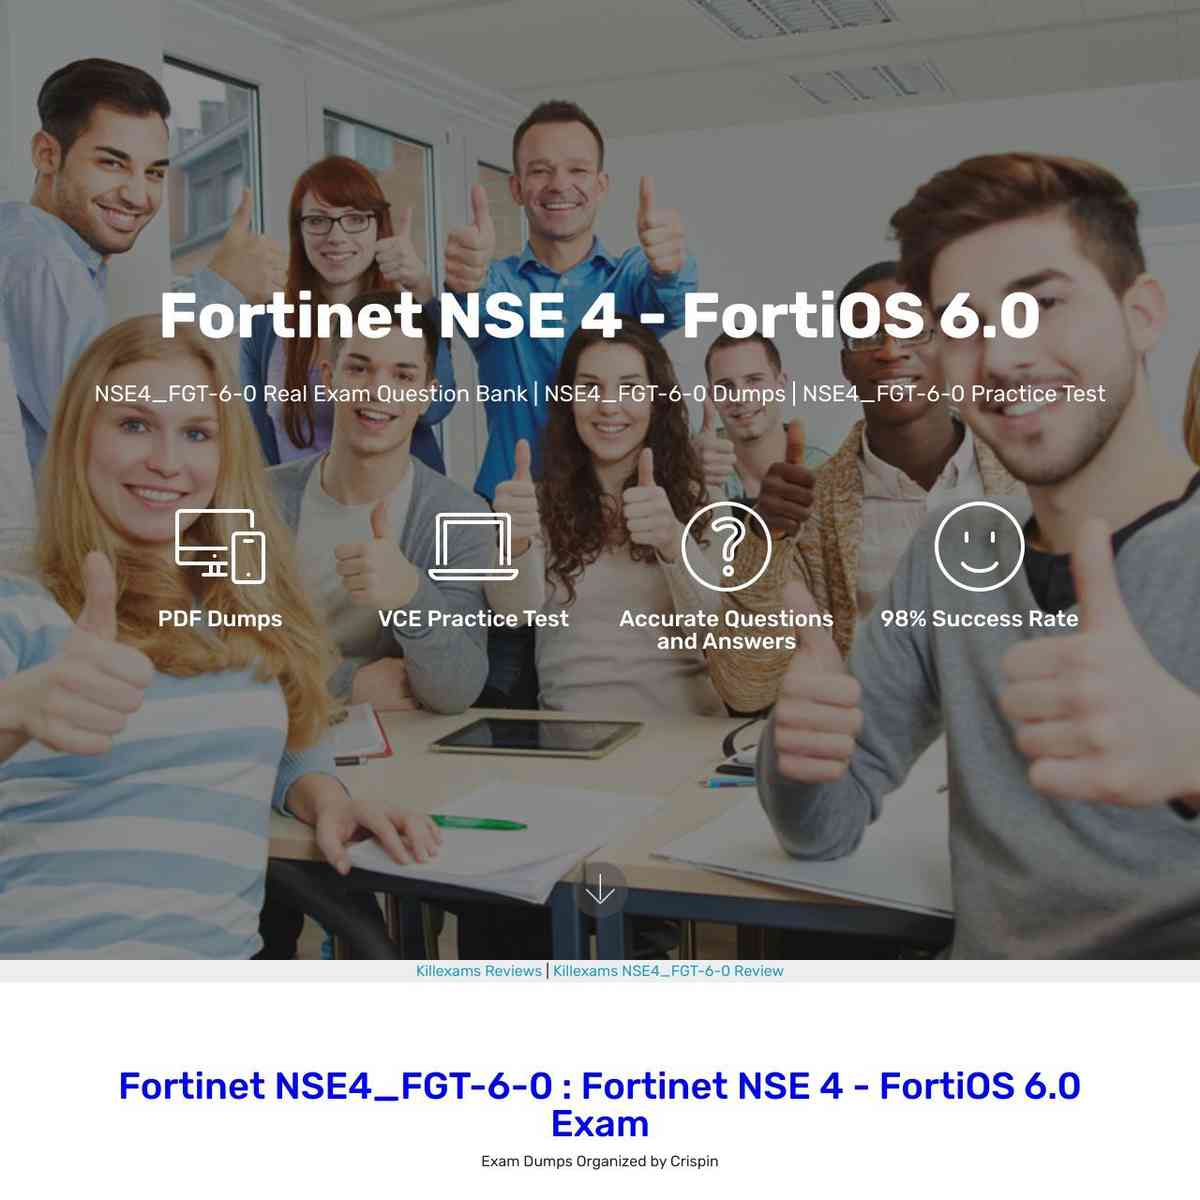 Don't Miss these Fortinet NSE4_FGT-6-0 Exam Questions for your exam